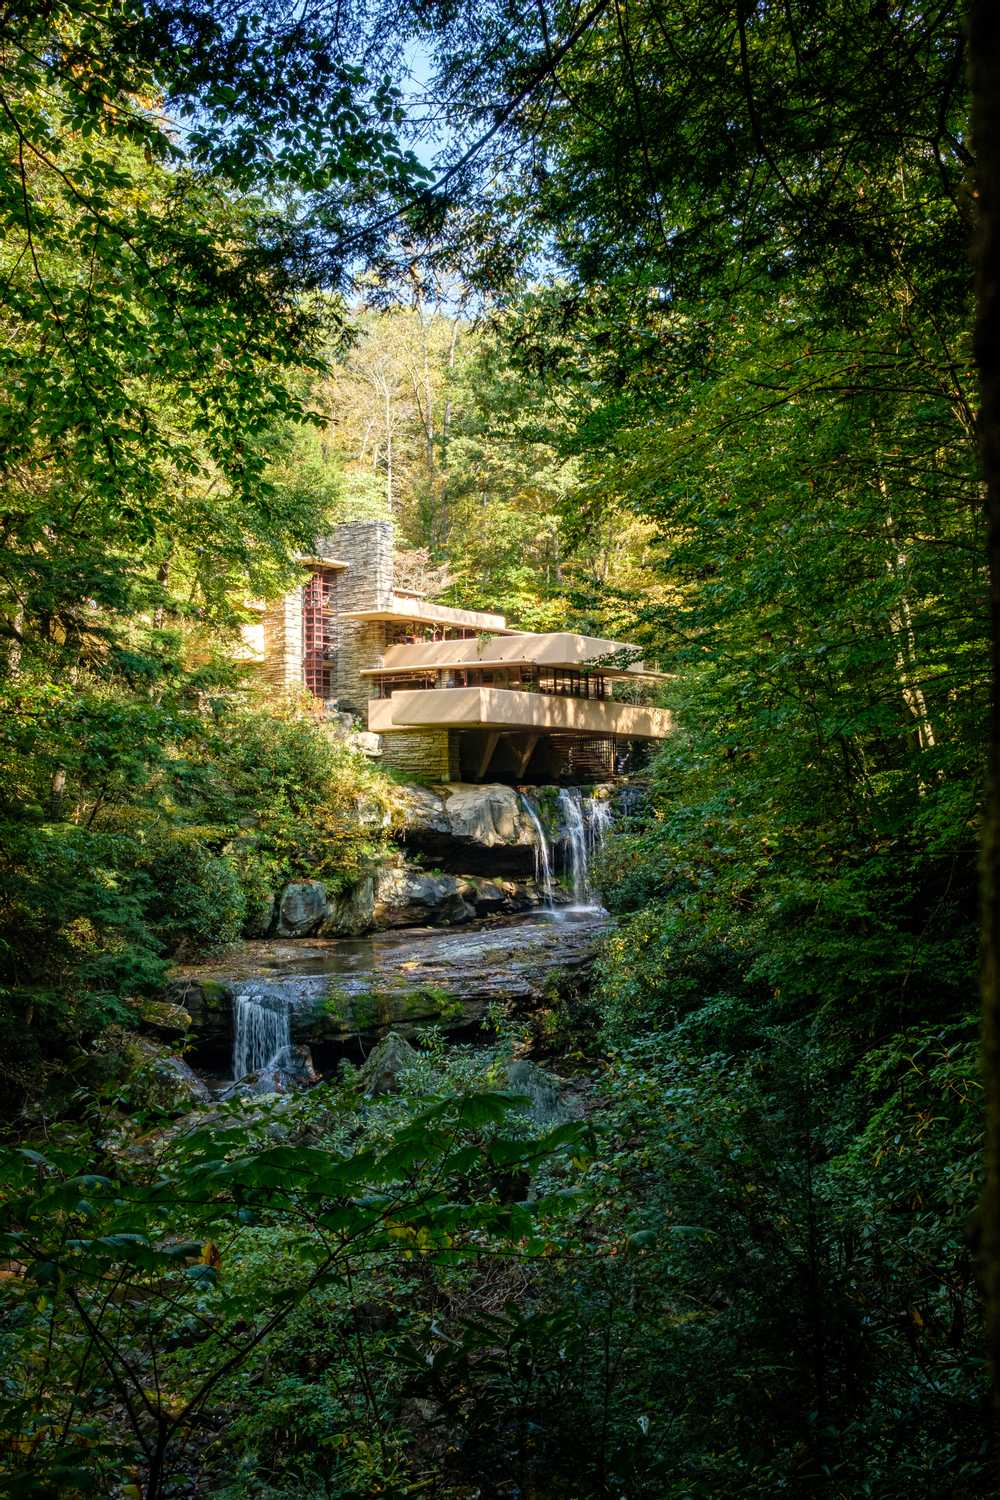 Fallingwater from the viewpoint